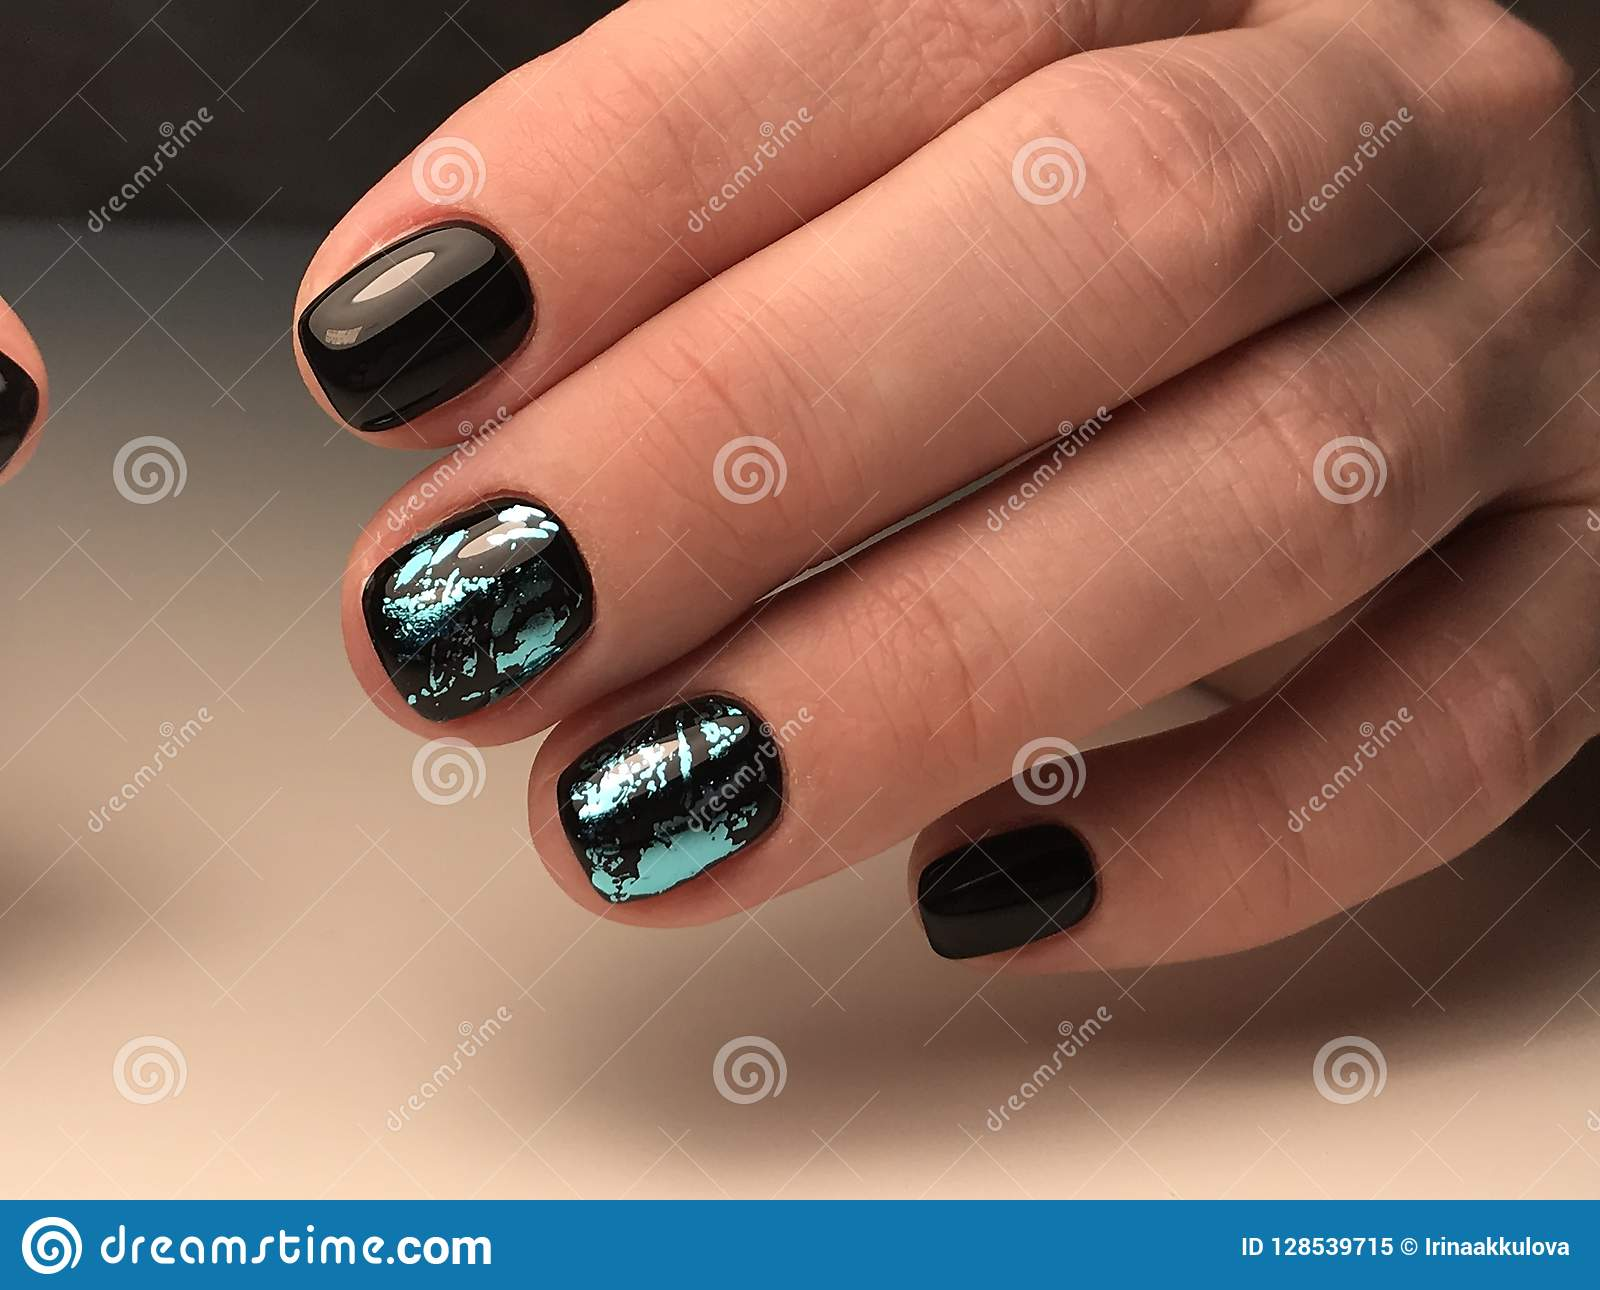 Design On Black Nail Gel Polish Stock Image , Image of style